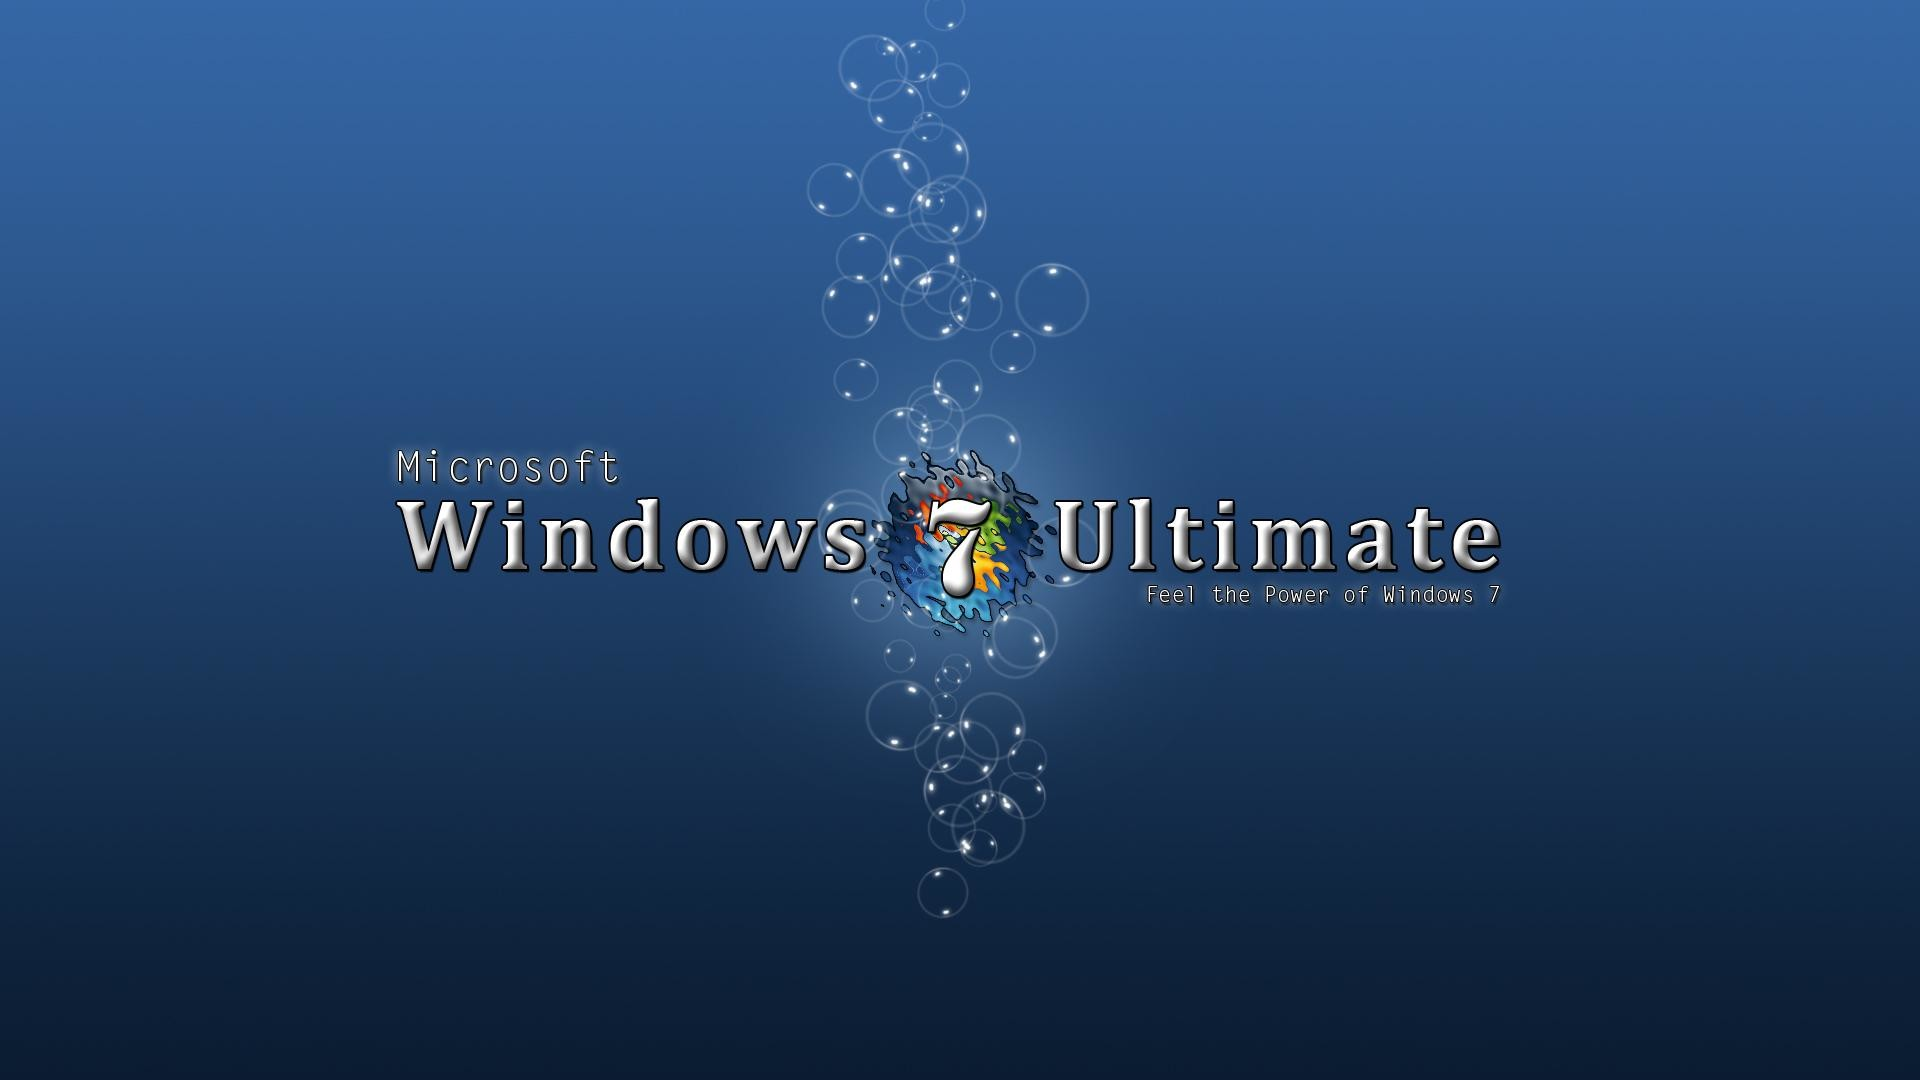 1920x1080 Blue Windows 7 Ultimate